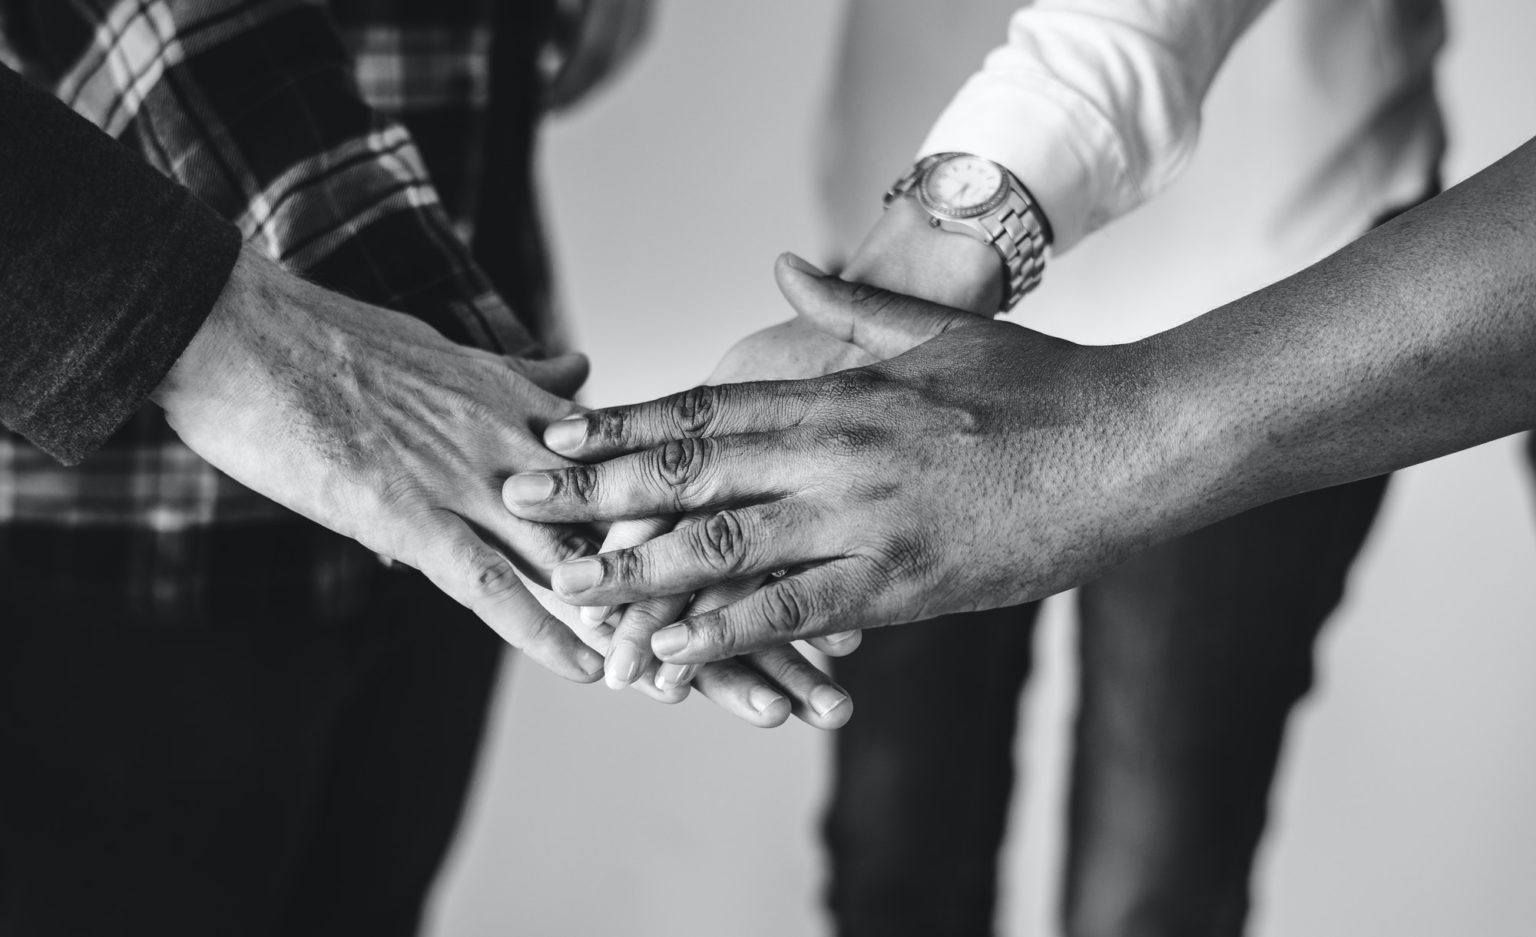 Diverse people joining hands together teamwork and community concept